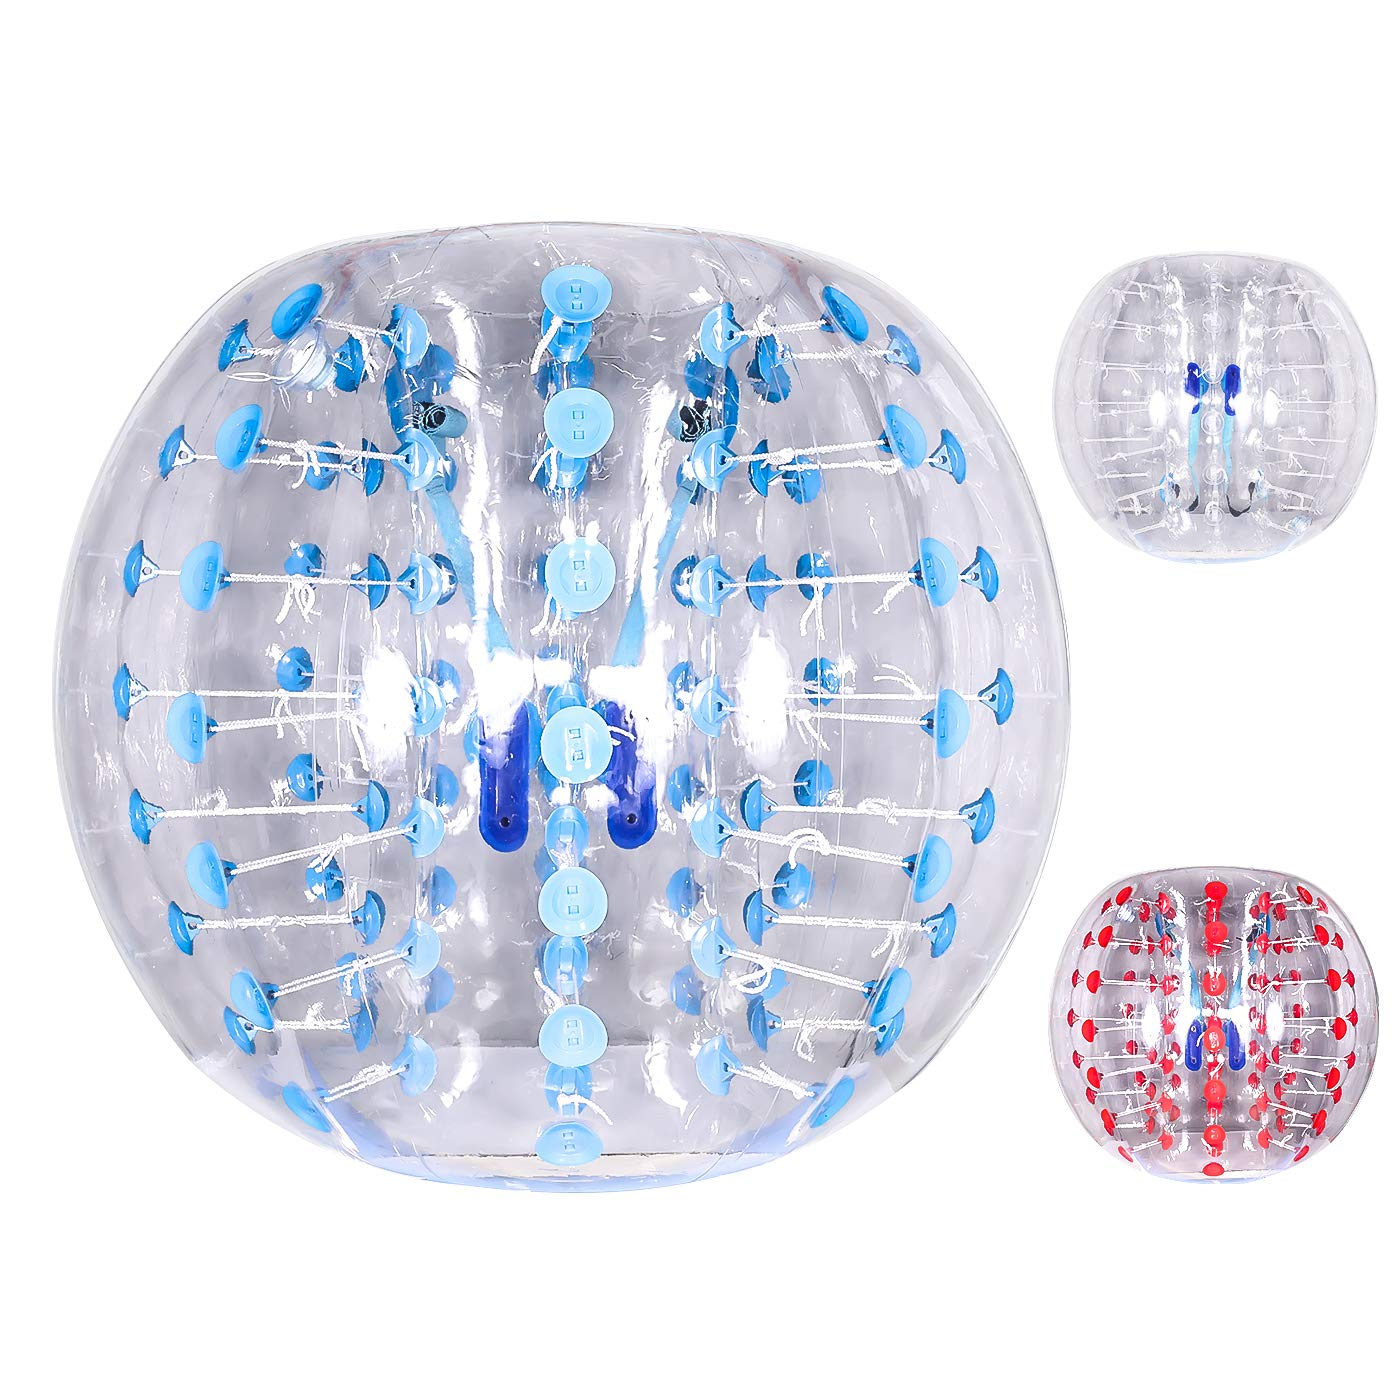 Ludosport Inflatable Bumper Ball 5 ft(1.5m) Dia Bubble Soccer, Inflatable Bumper Bubble Ball, Giant Human Hamster Knocker Ball Body Zorb for Adults &Teens (Blue)